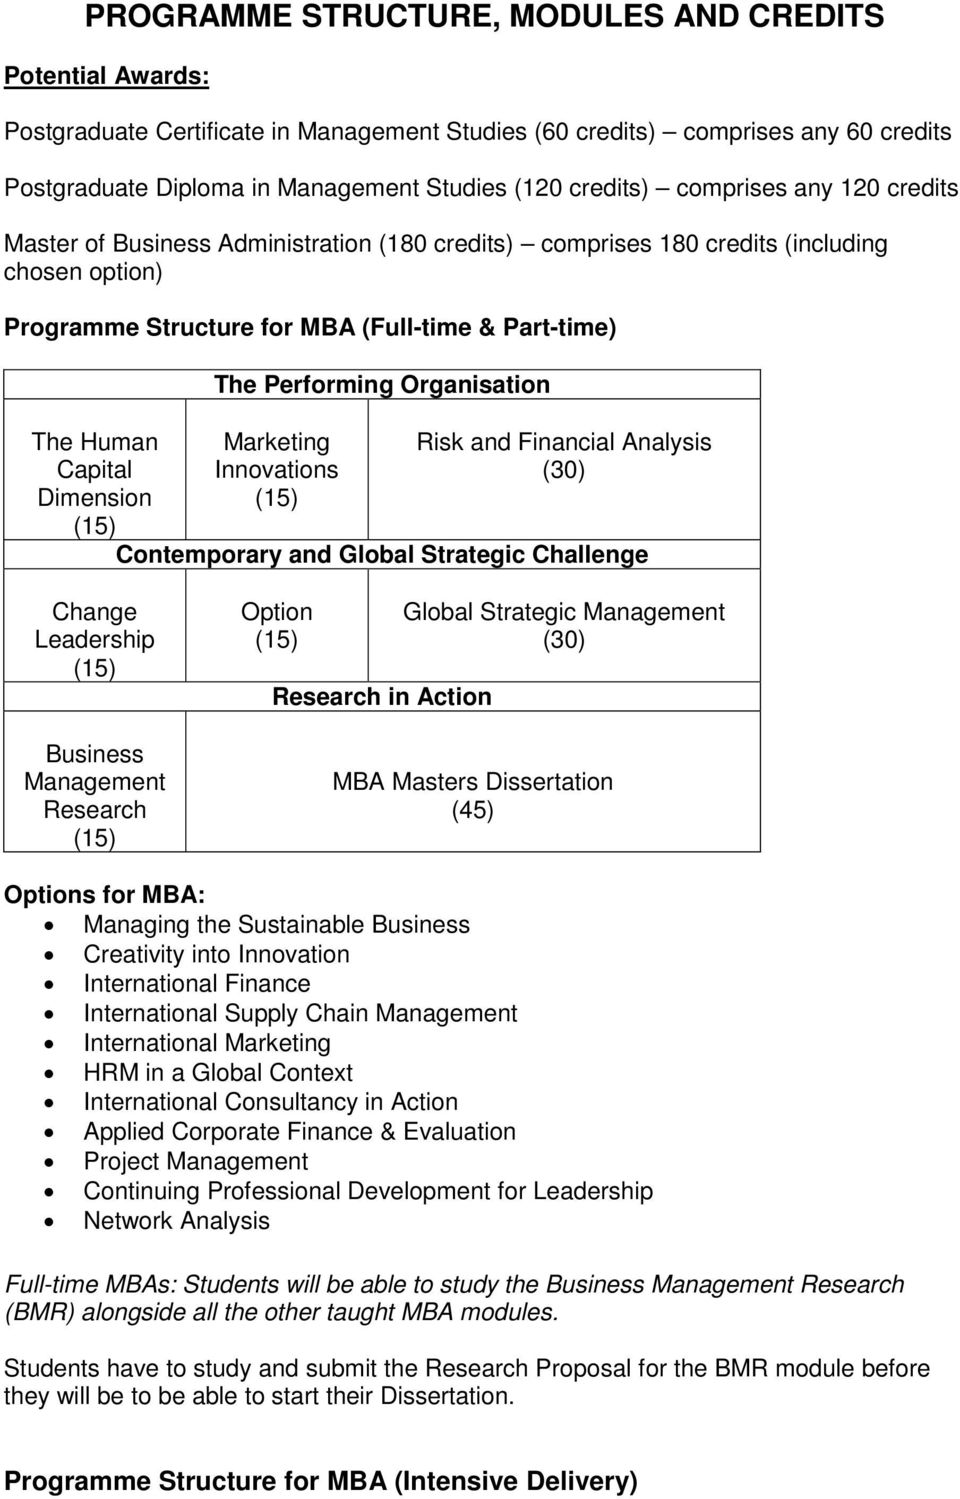 Capital Dimension The Performing Organisation Marketing Innovations Risk and Financial Analysis (30) Contemporary and Global Strategic Challenge Change Leadership Business Management Research Option